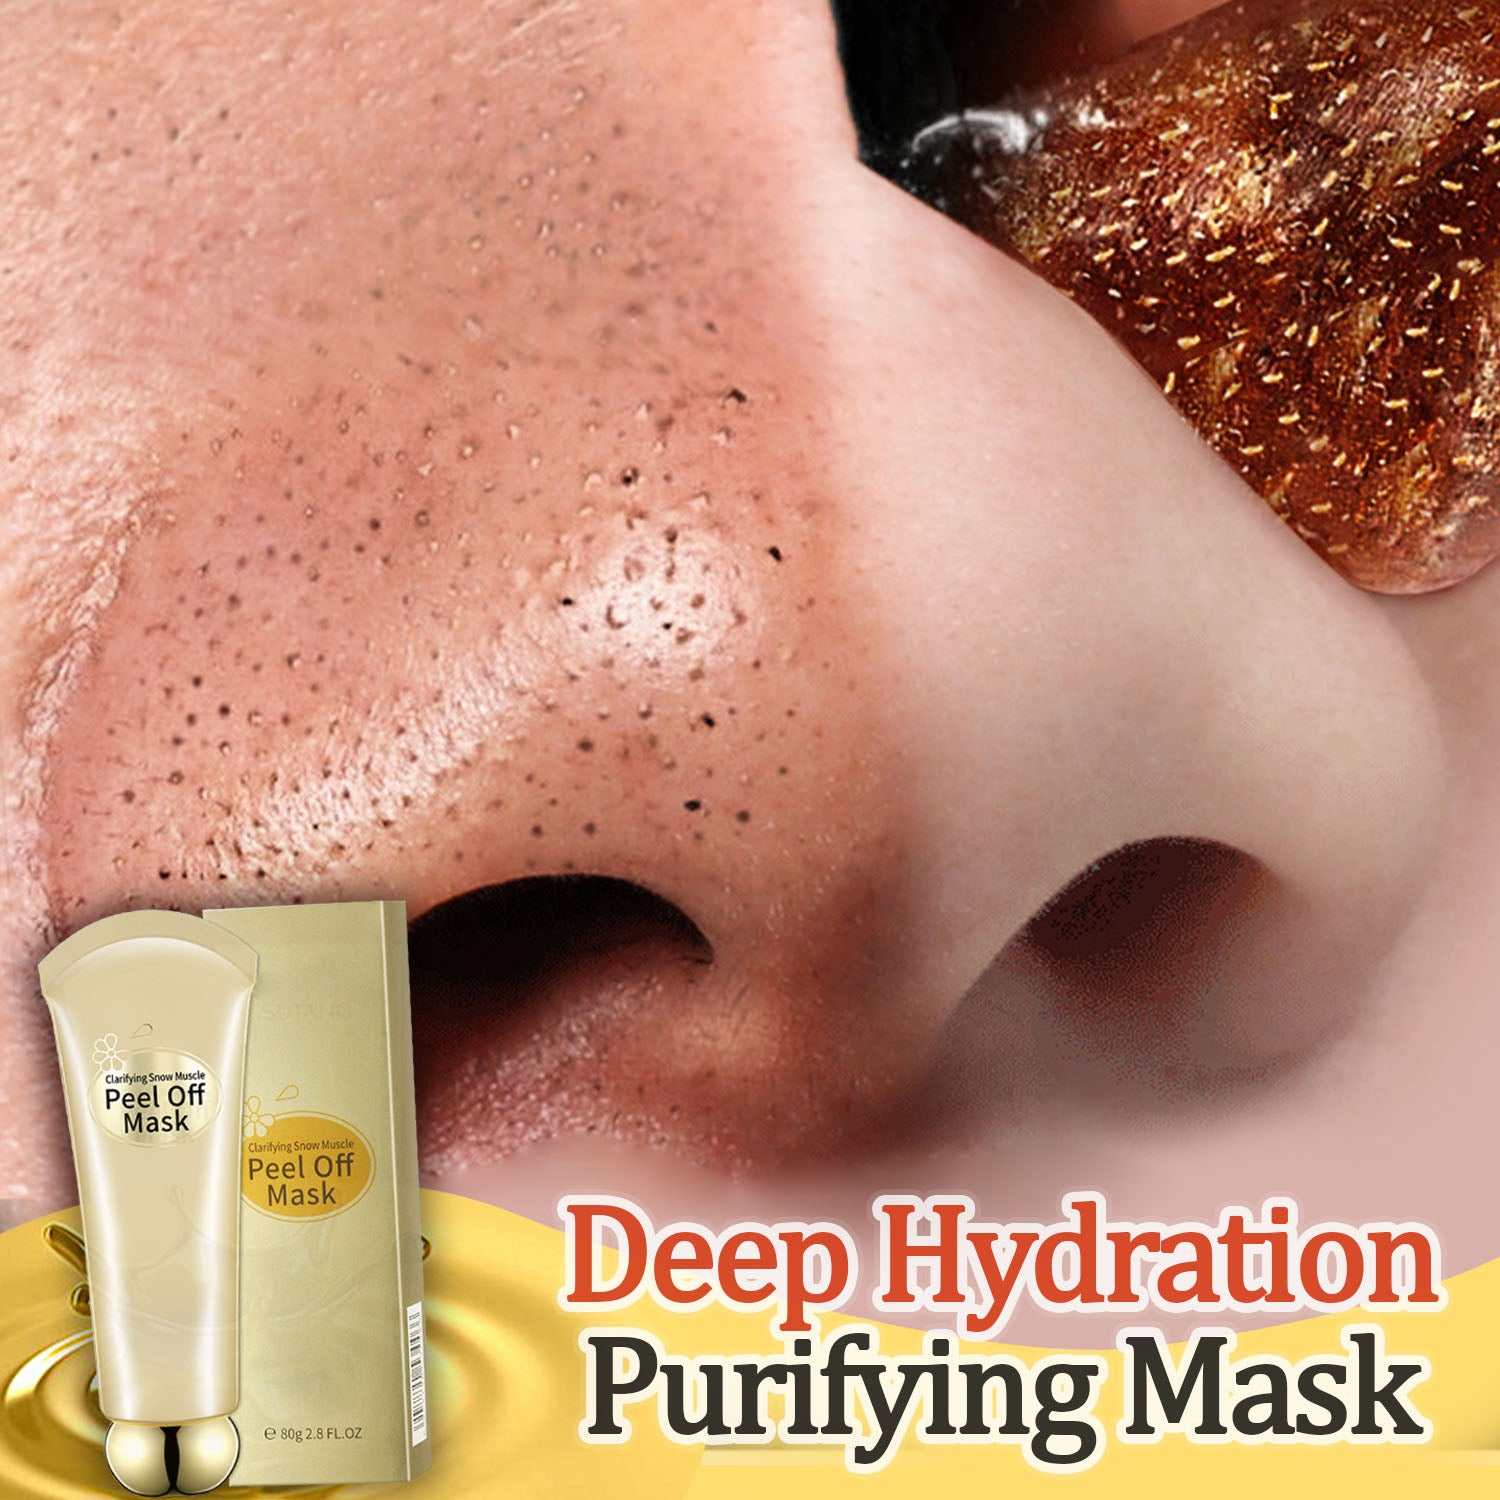 Deep Hydration Purifying Mask